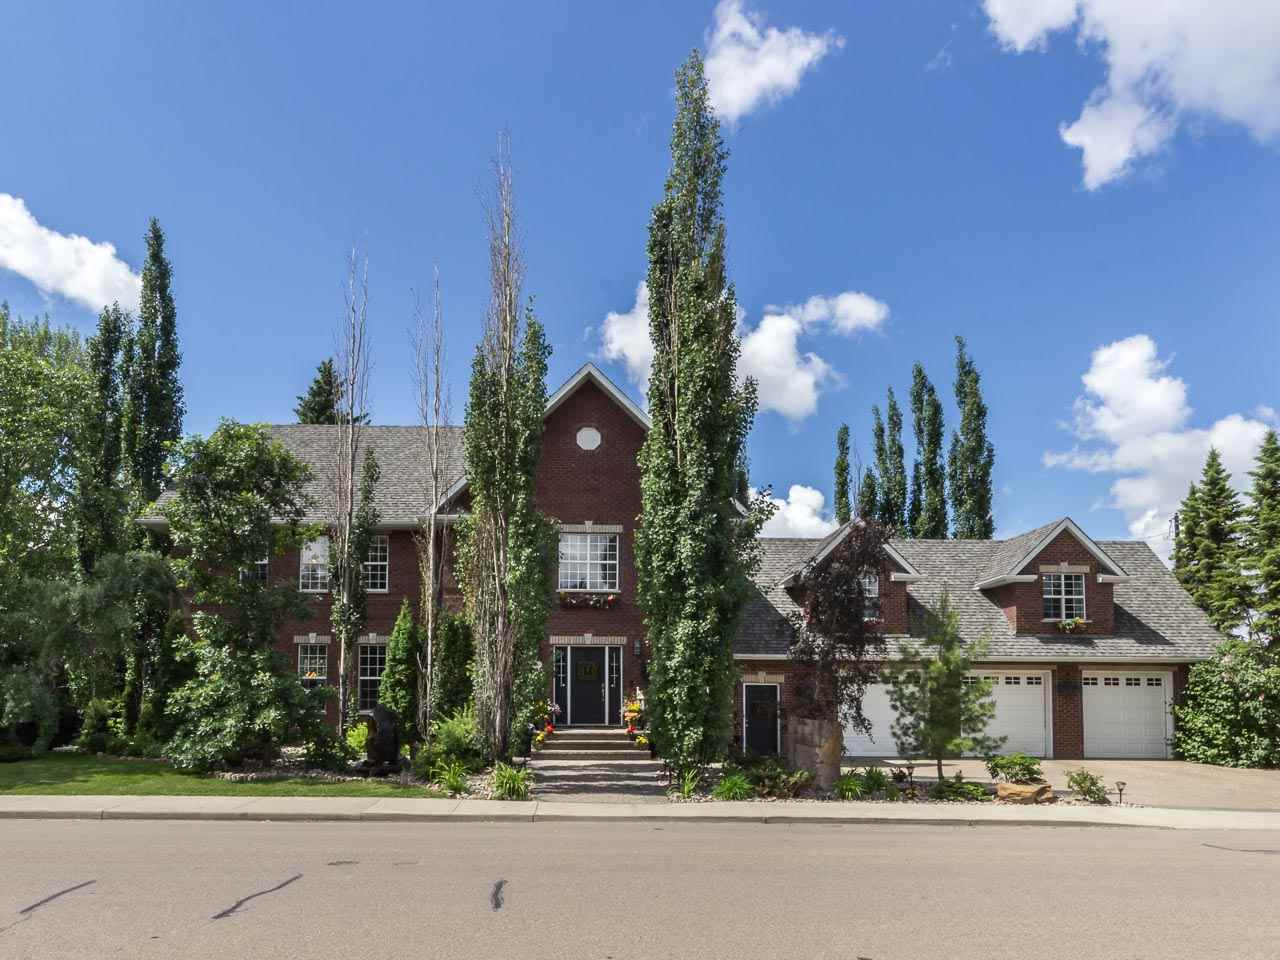 Main Photo: 9340 146 Street in Edmonton: Zone 10 House for sale : MLS® # E4069455